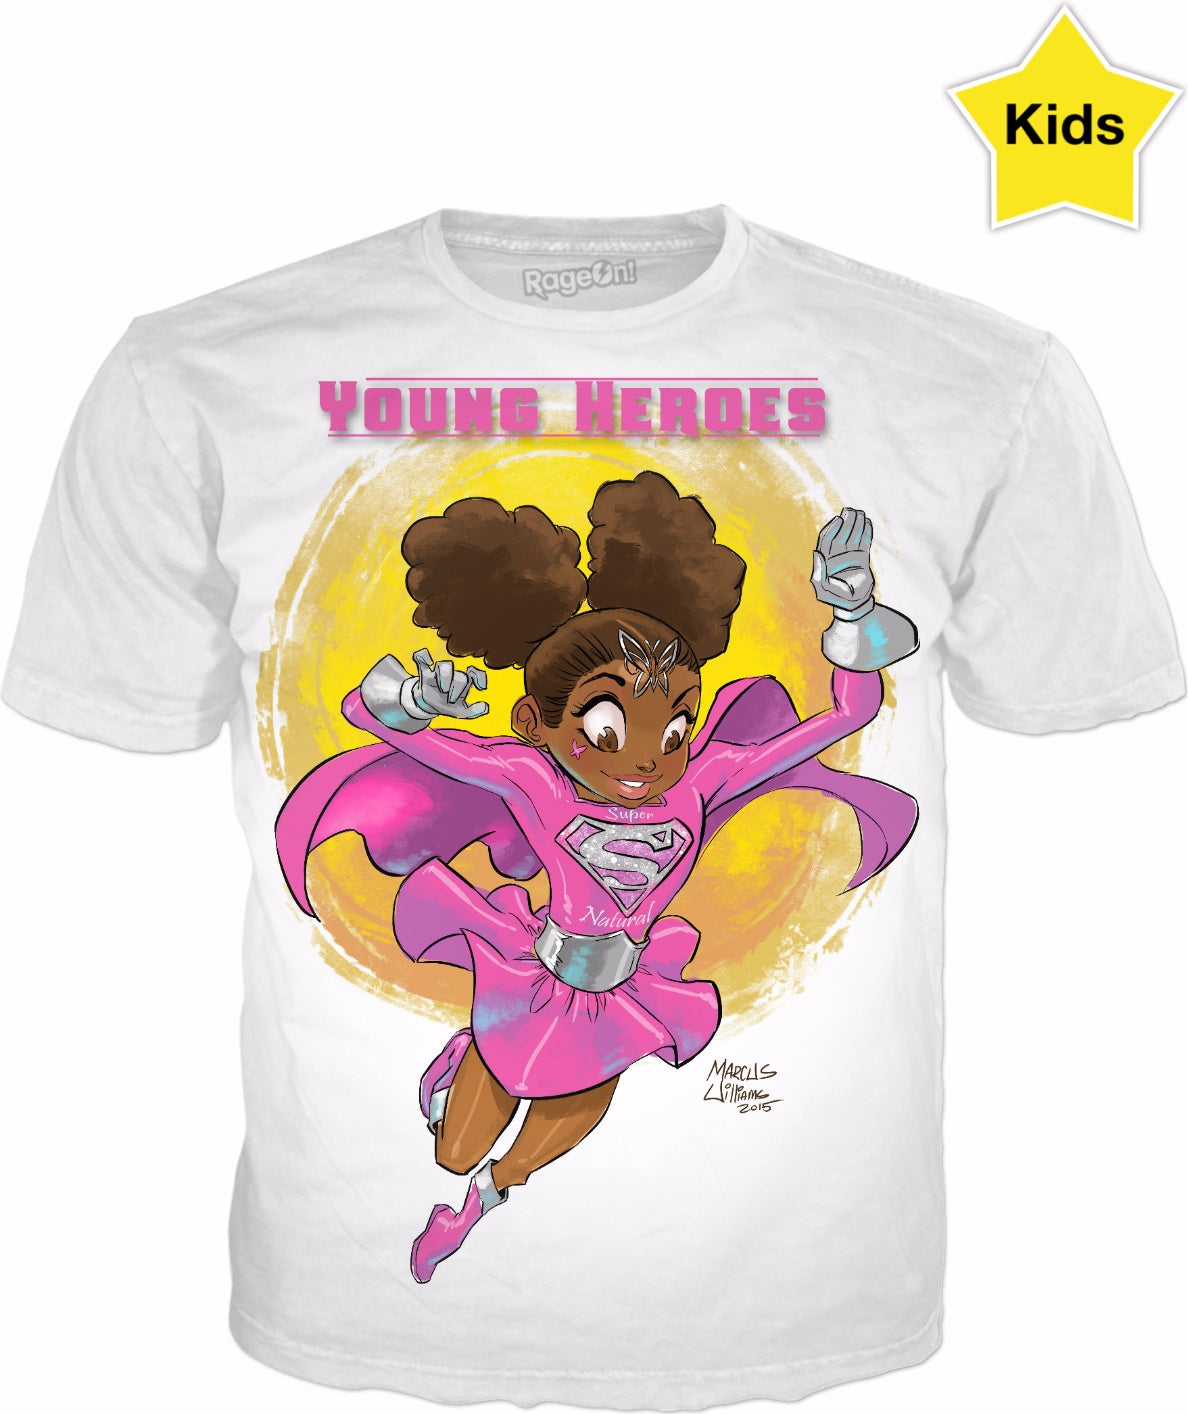 Young Heroes: Unlimited (Limited Edition Kids Shirts)- Super Natural Girl